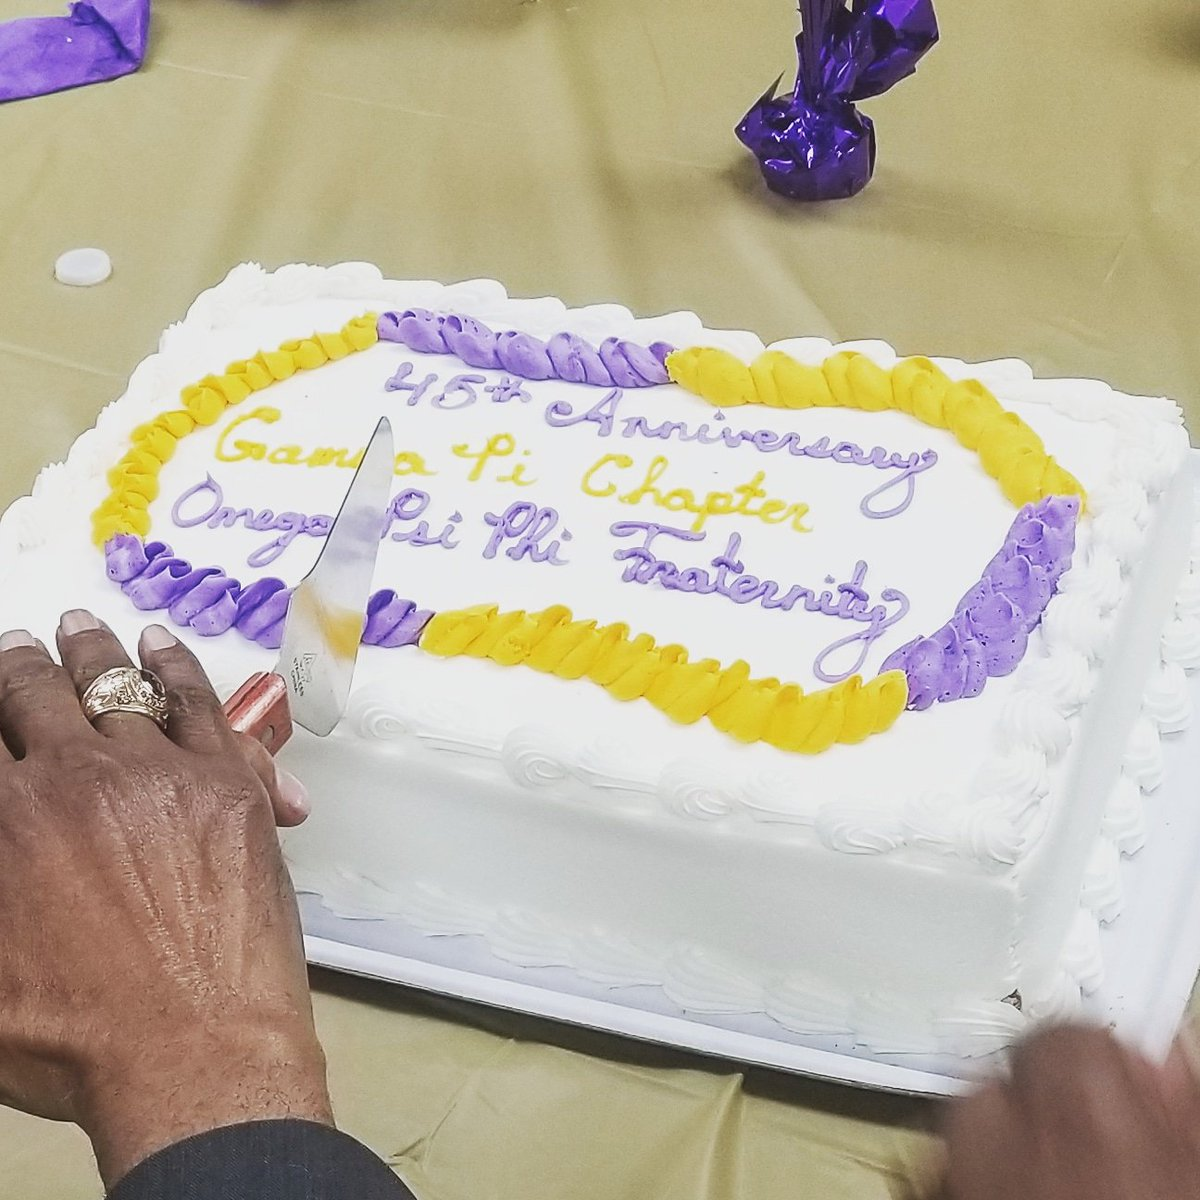 Gammapi Omegapsiphi On Twitter Our 45th Anniversary Celebration On